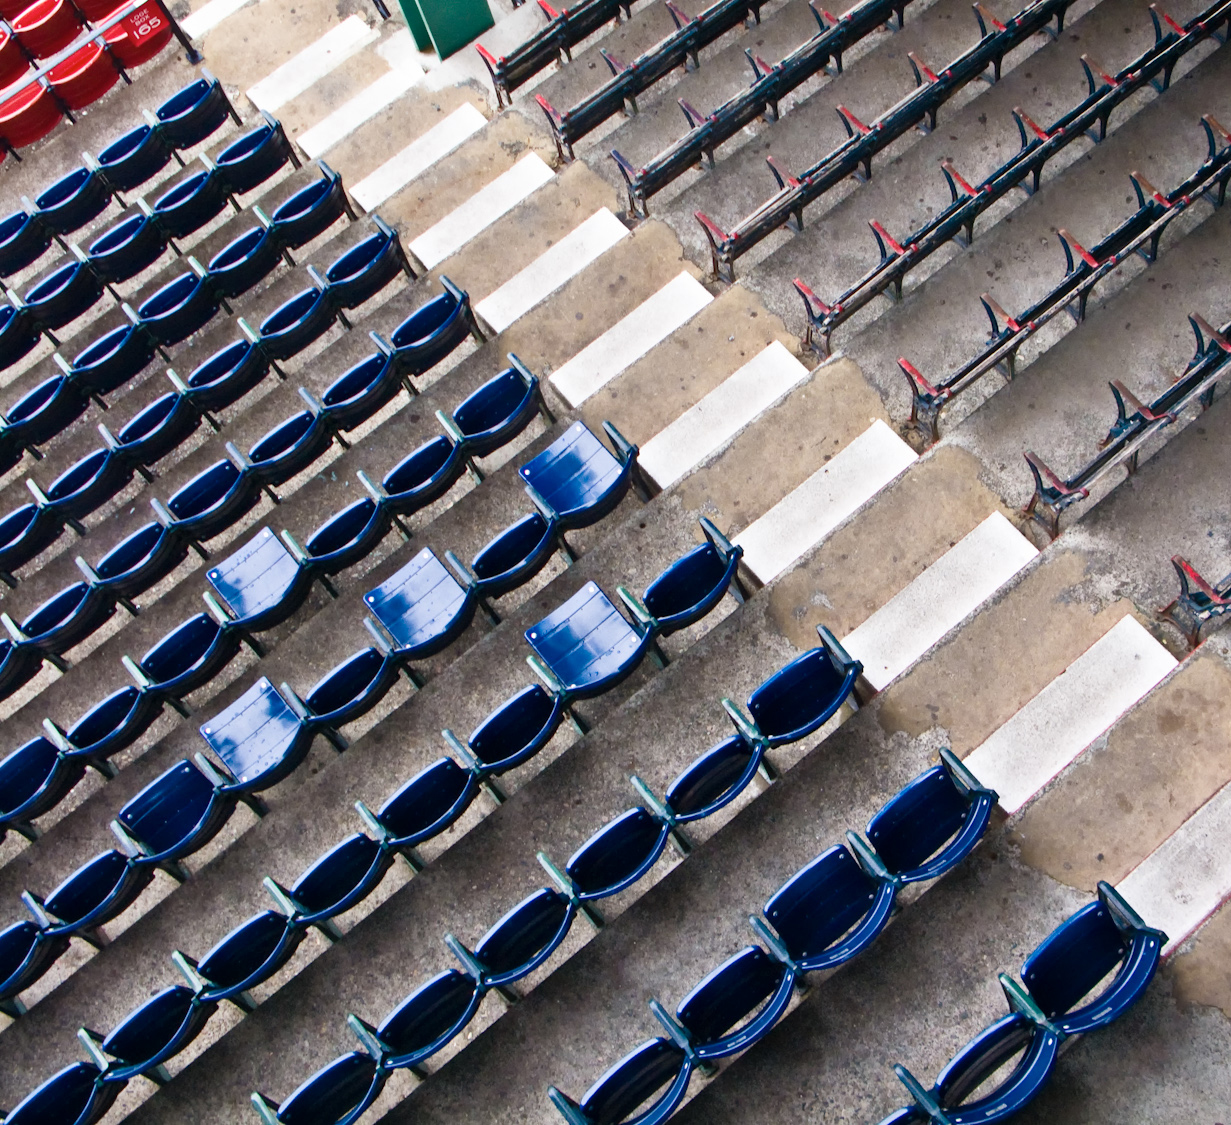 The oldest seats in baseball - Fenway Park